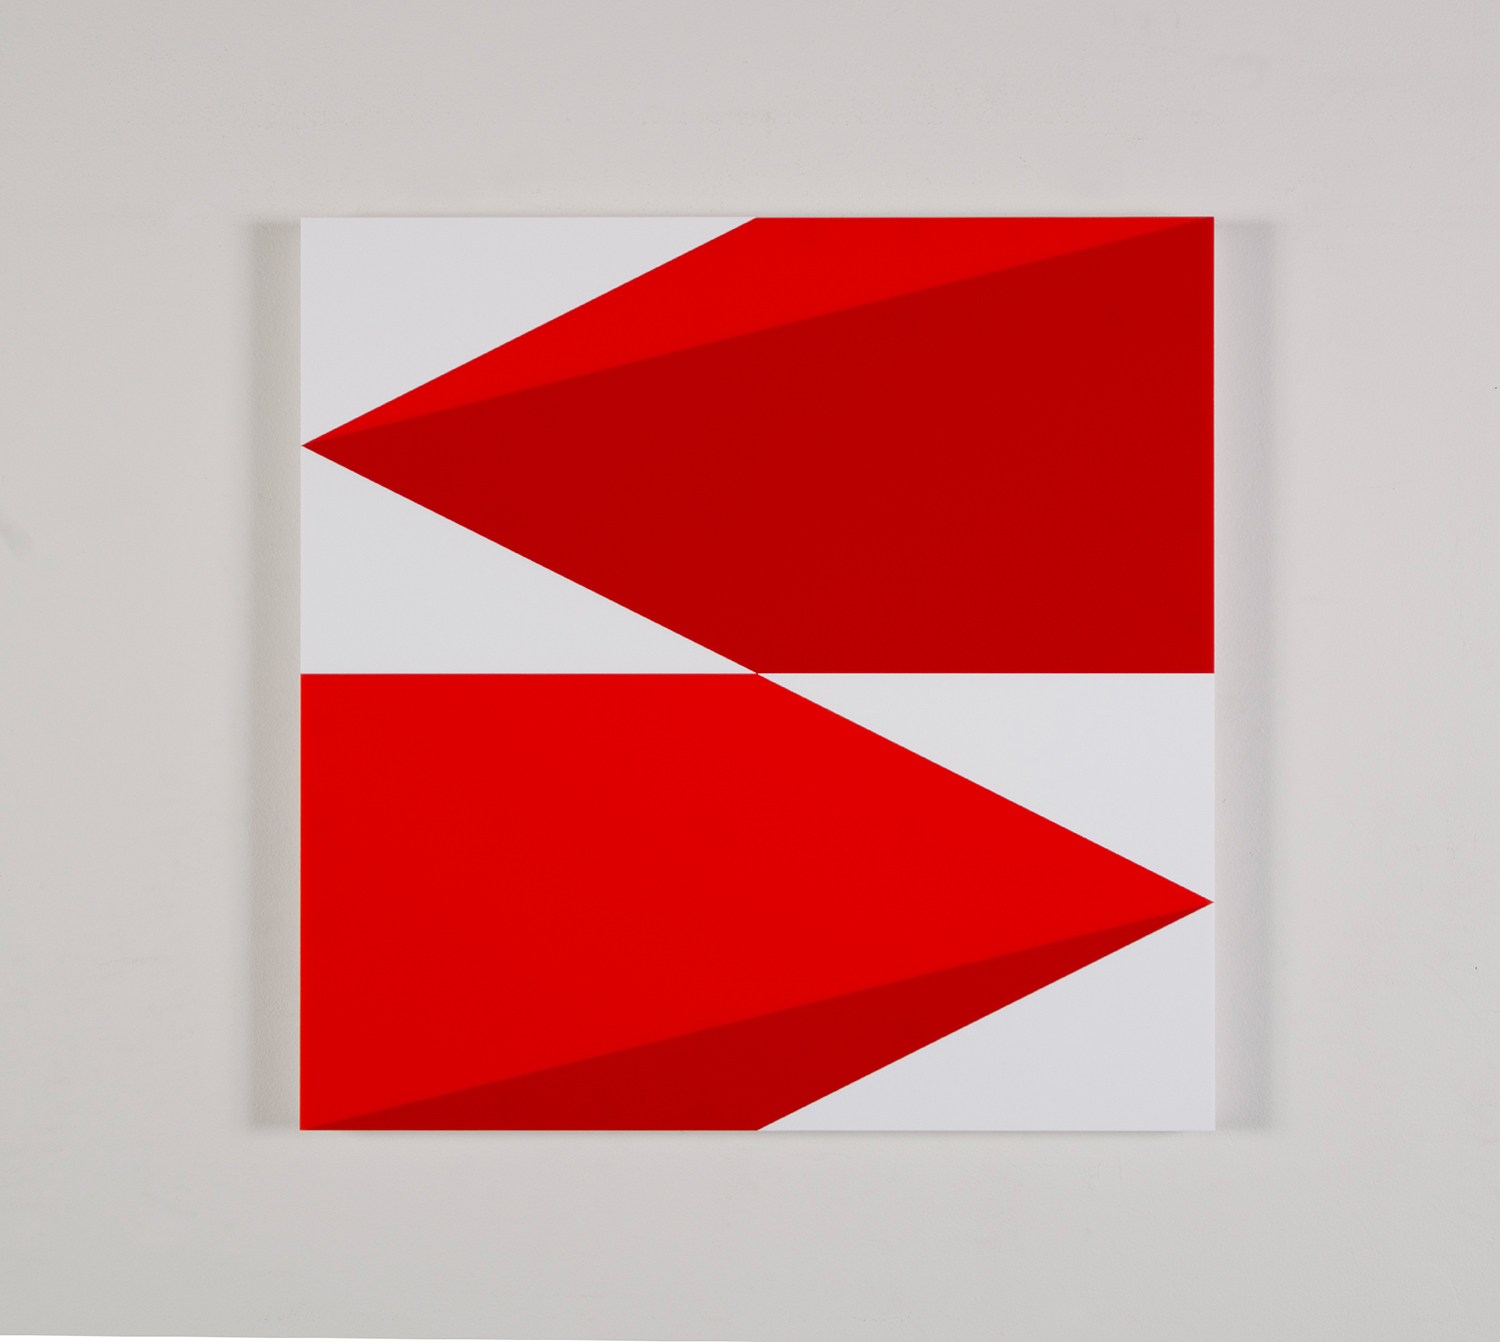 "Composition in 2662 Red, 2793 Red and 3015 White 22 1/2"" x 22 1/2"" 2016"